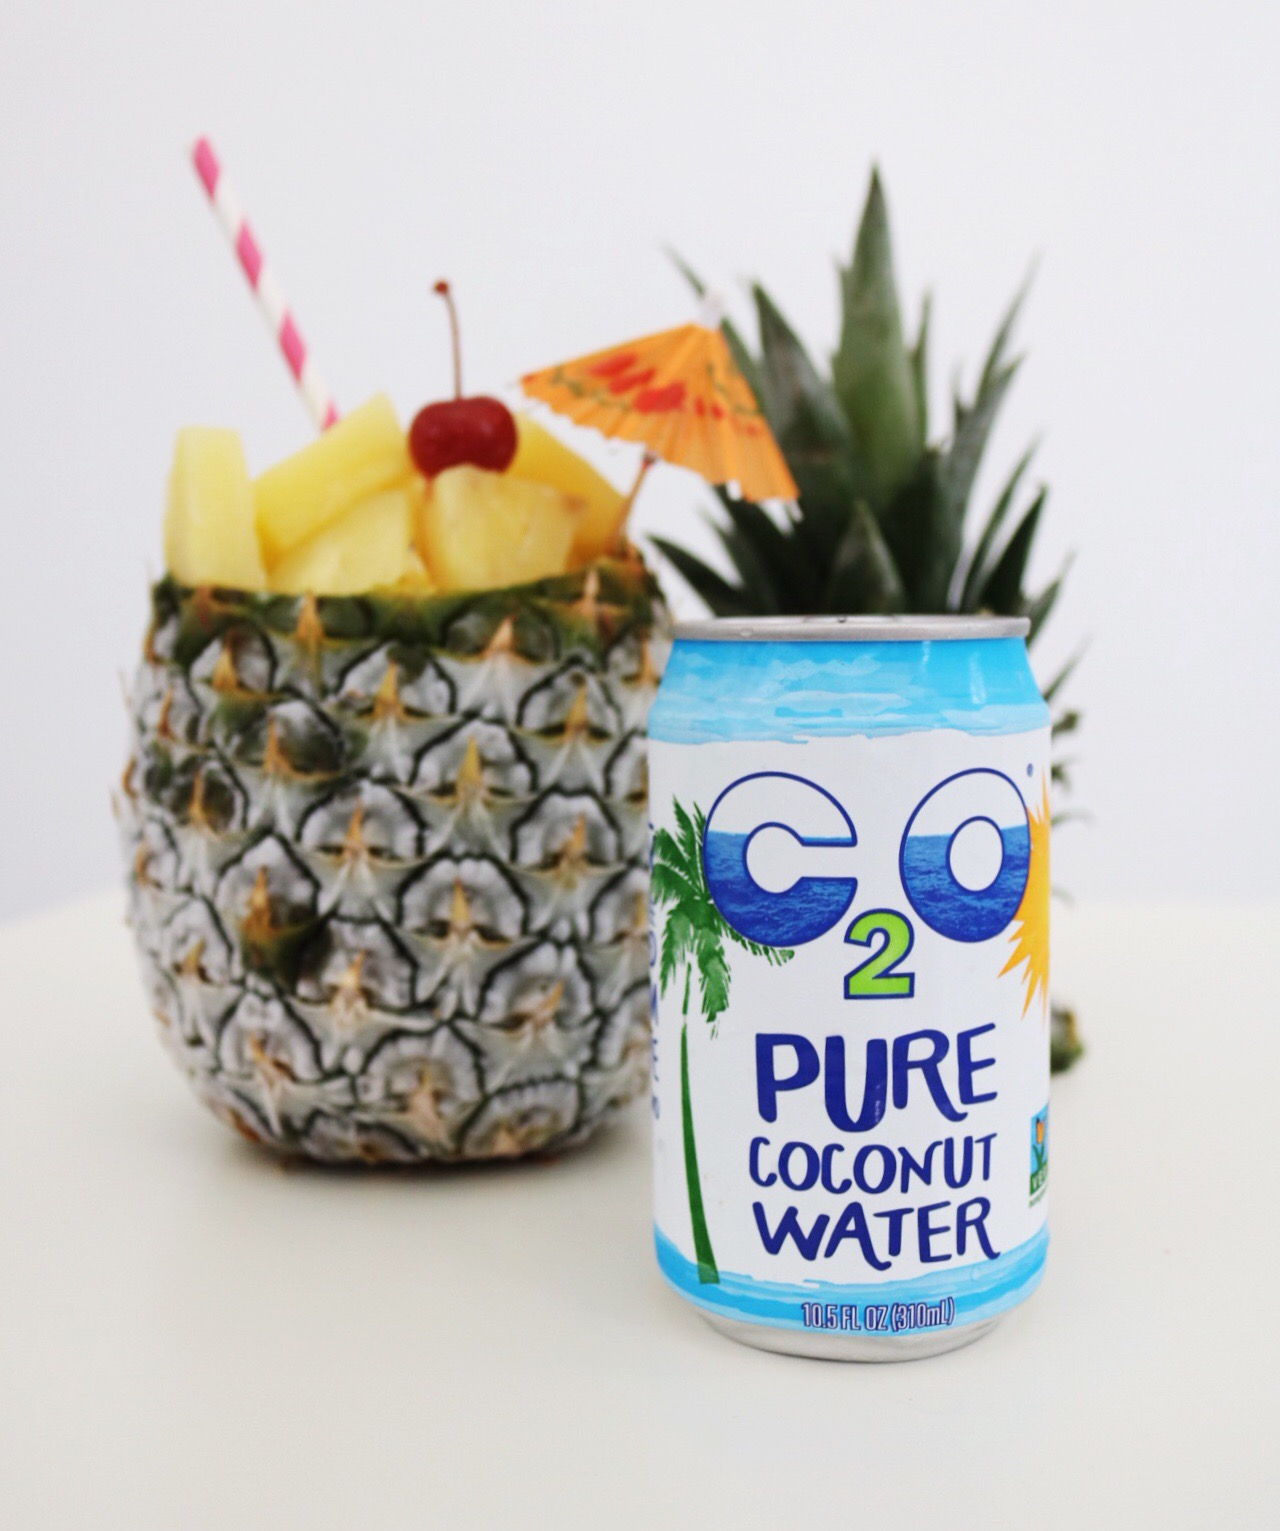 C20 Pure Coconut Water is refreshing, hydrating, and makes a great addition to a traditional piña colada!